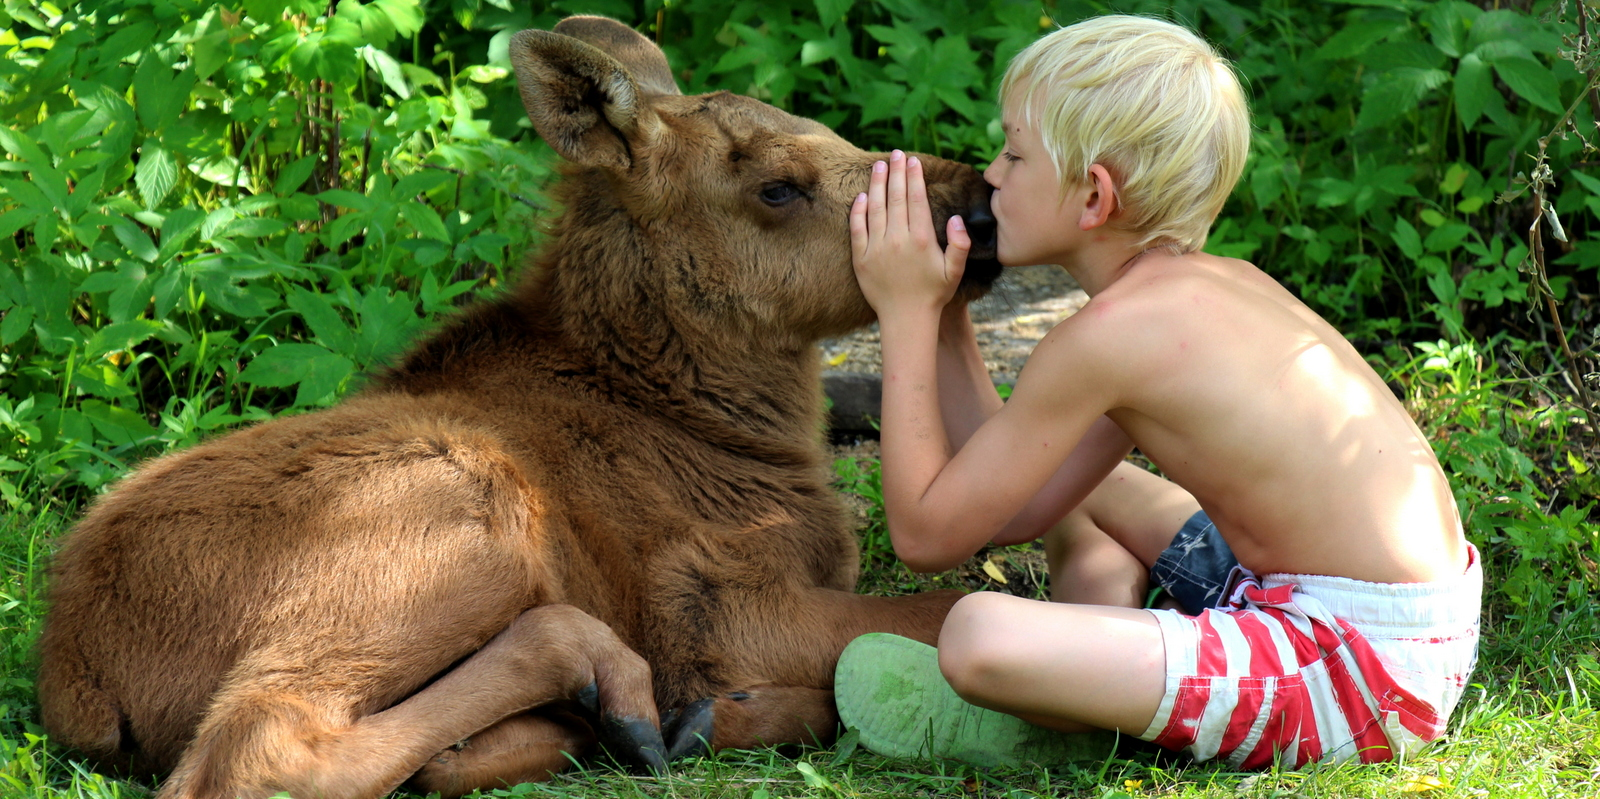 Boy and moose